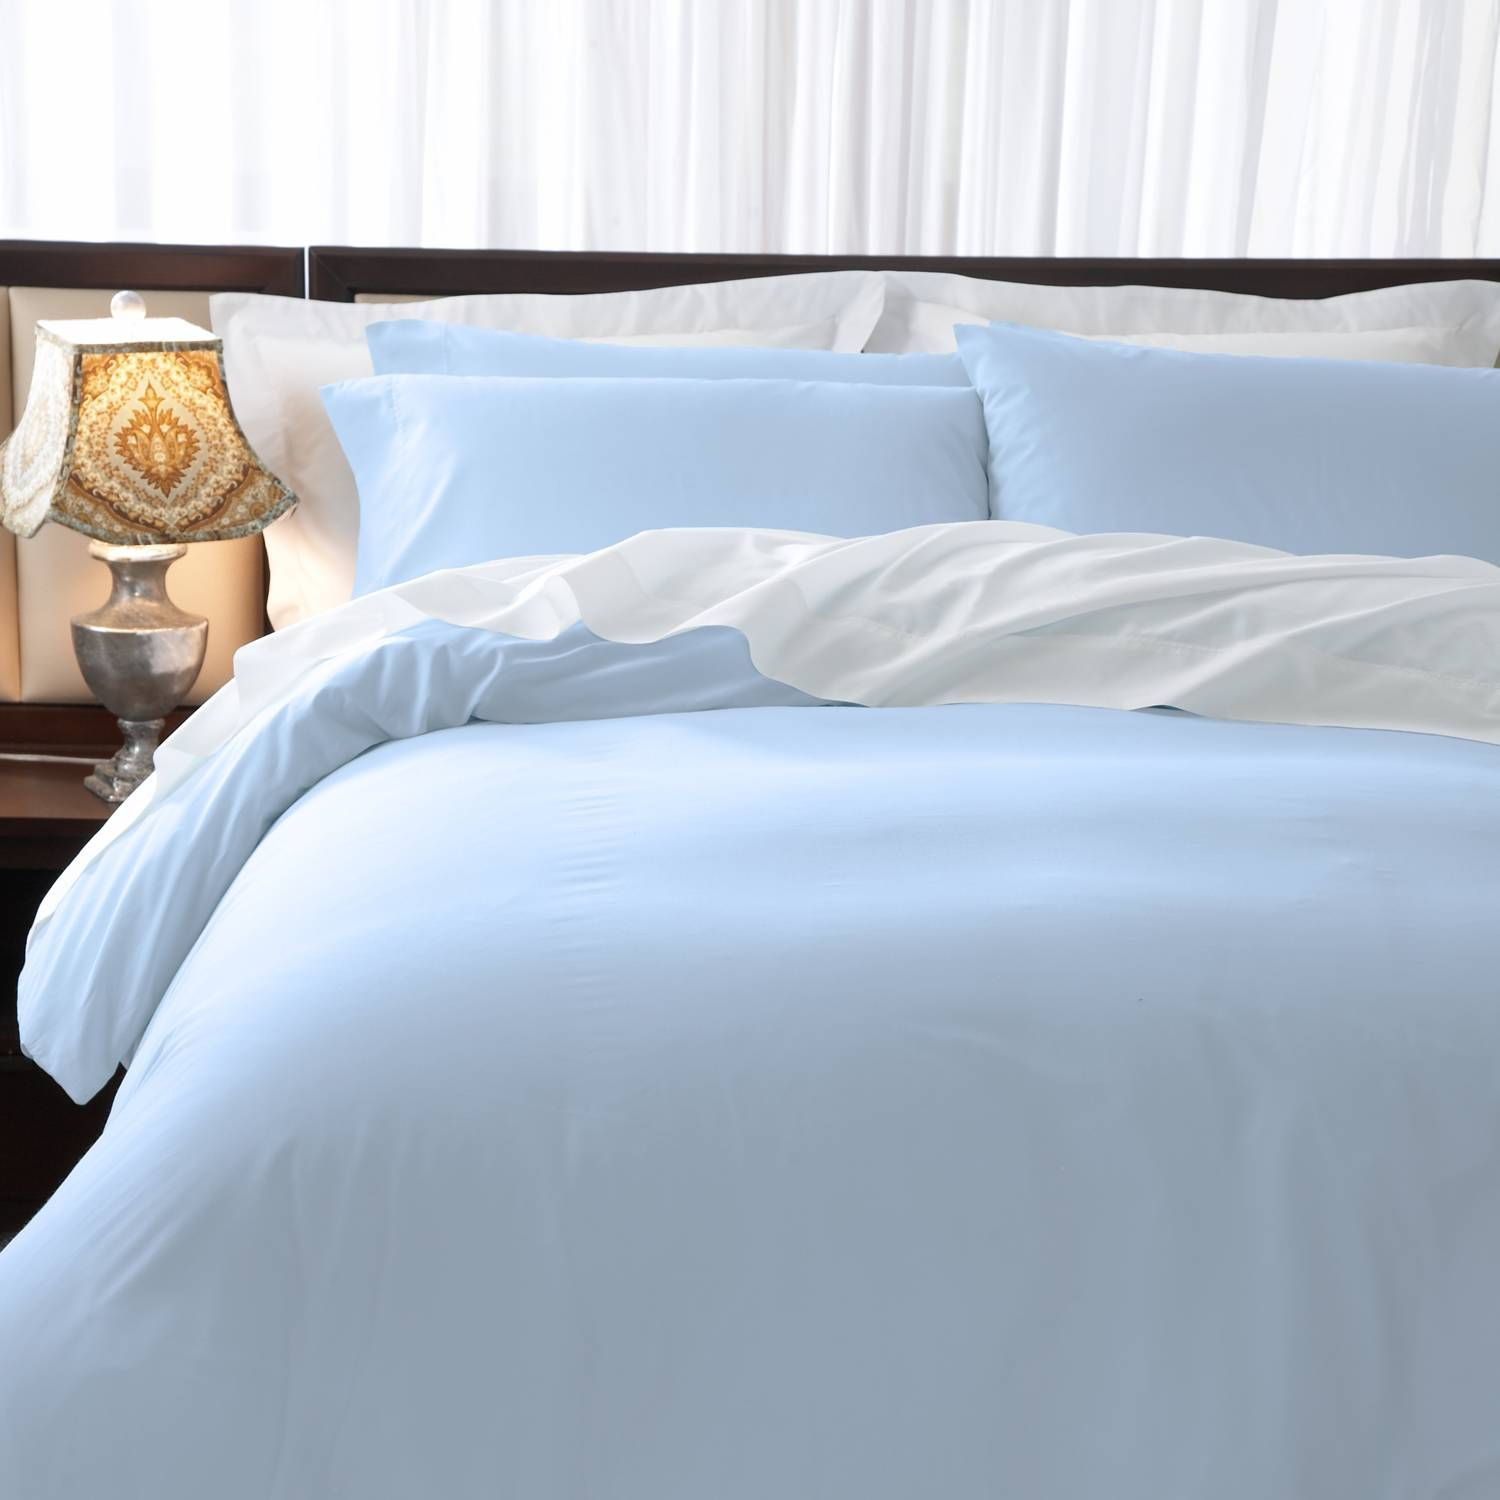 Difference Between Duvet And Comforter Light Blue Rooms Light Blue Comforter Pintuck Duvet Cover